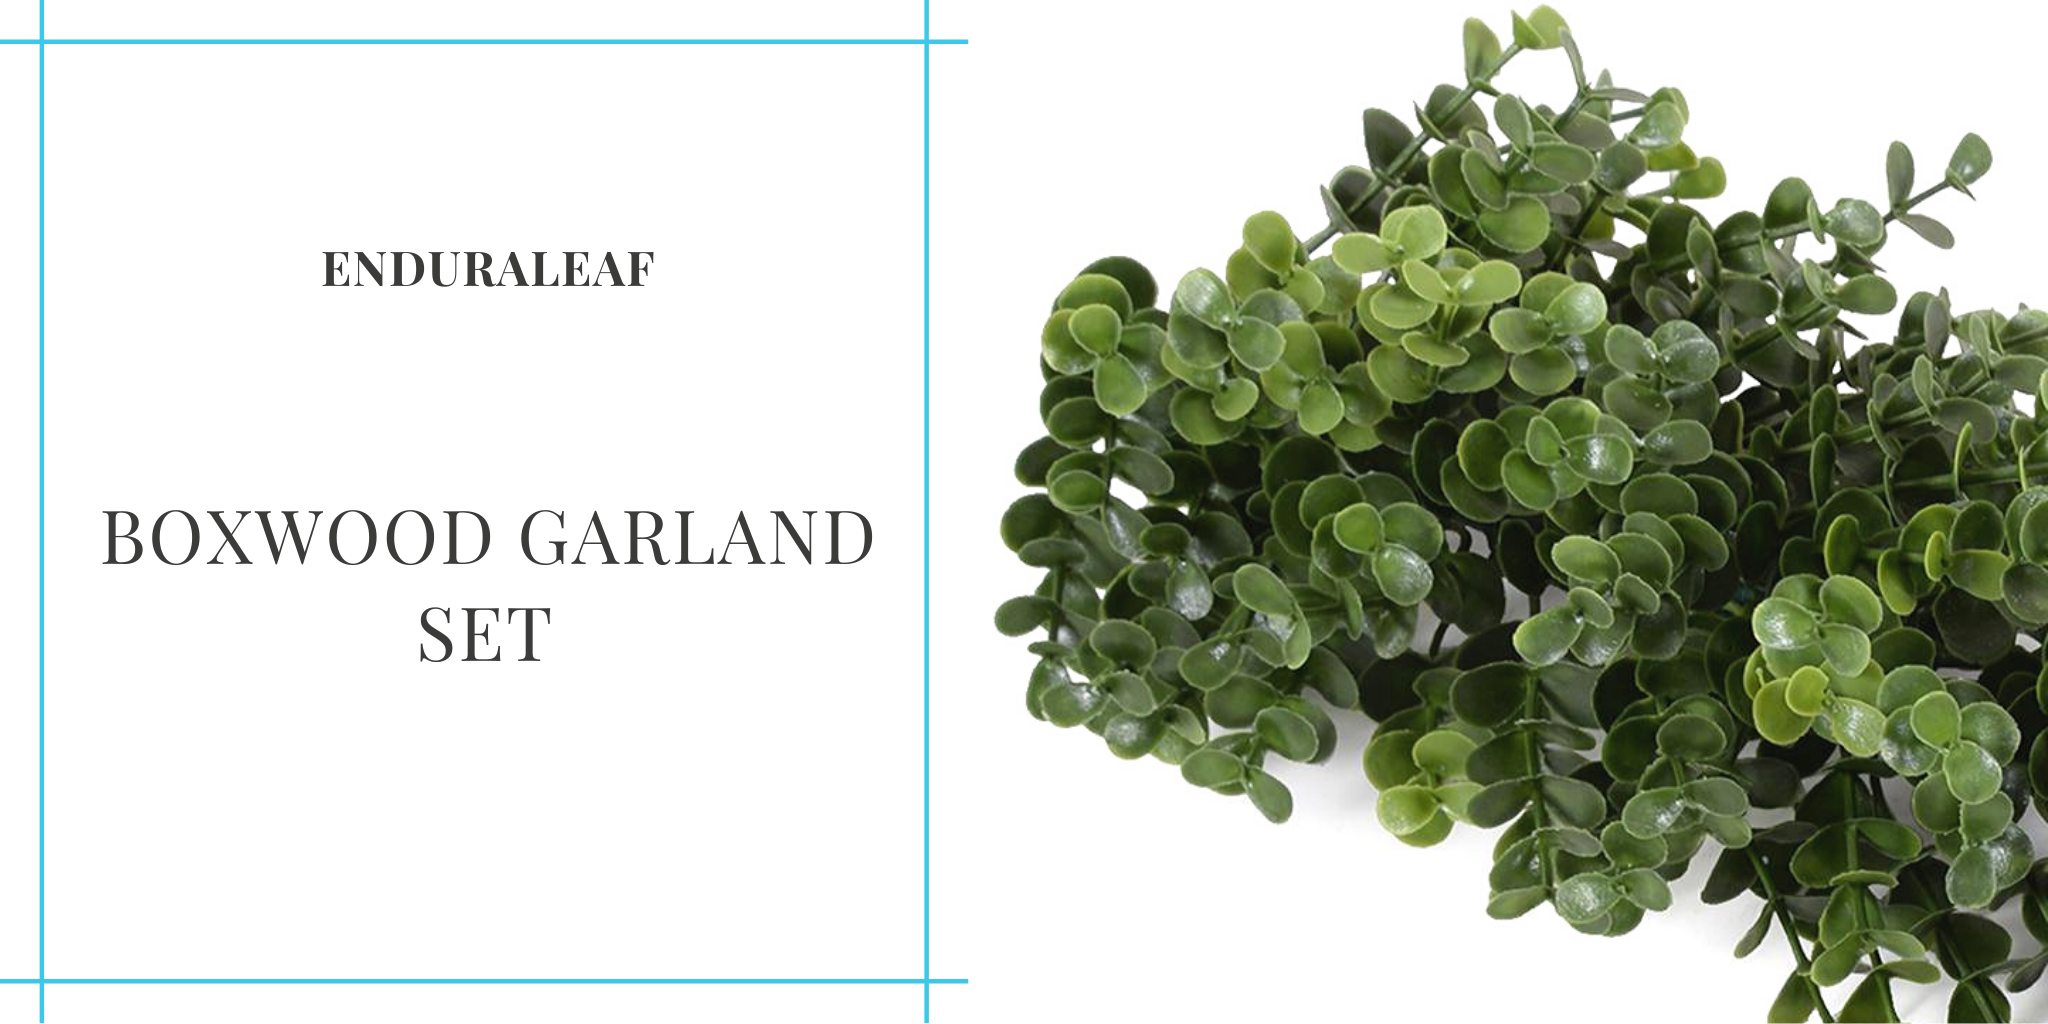 enduraleaf-boxwood-garland set